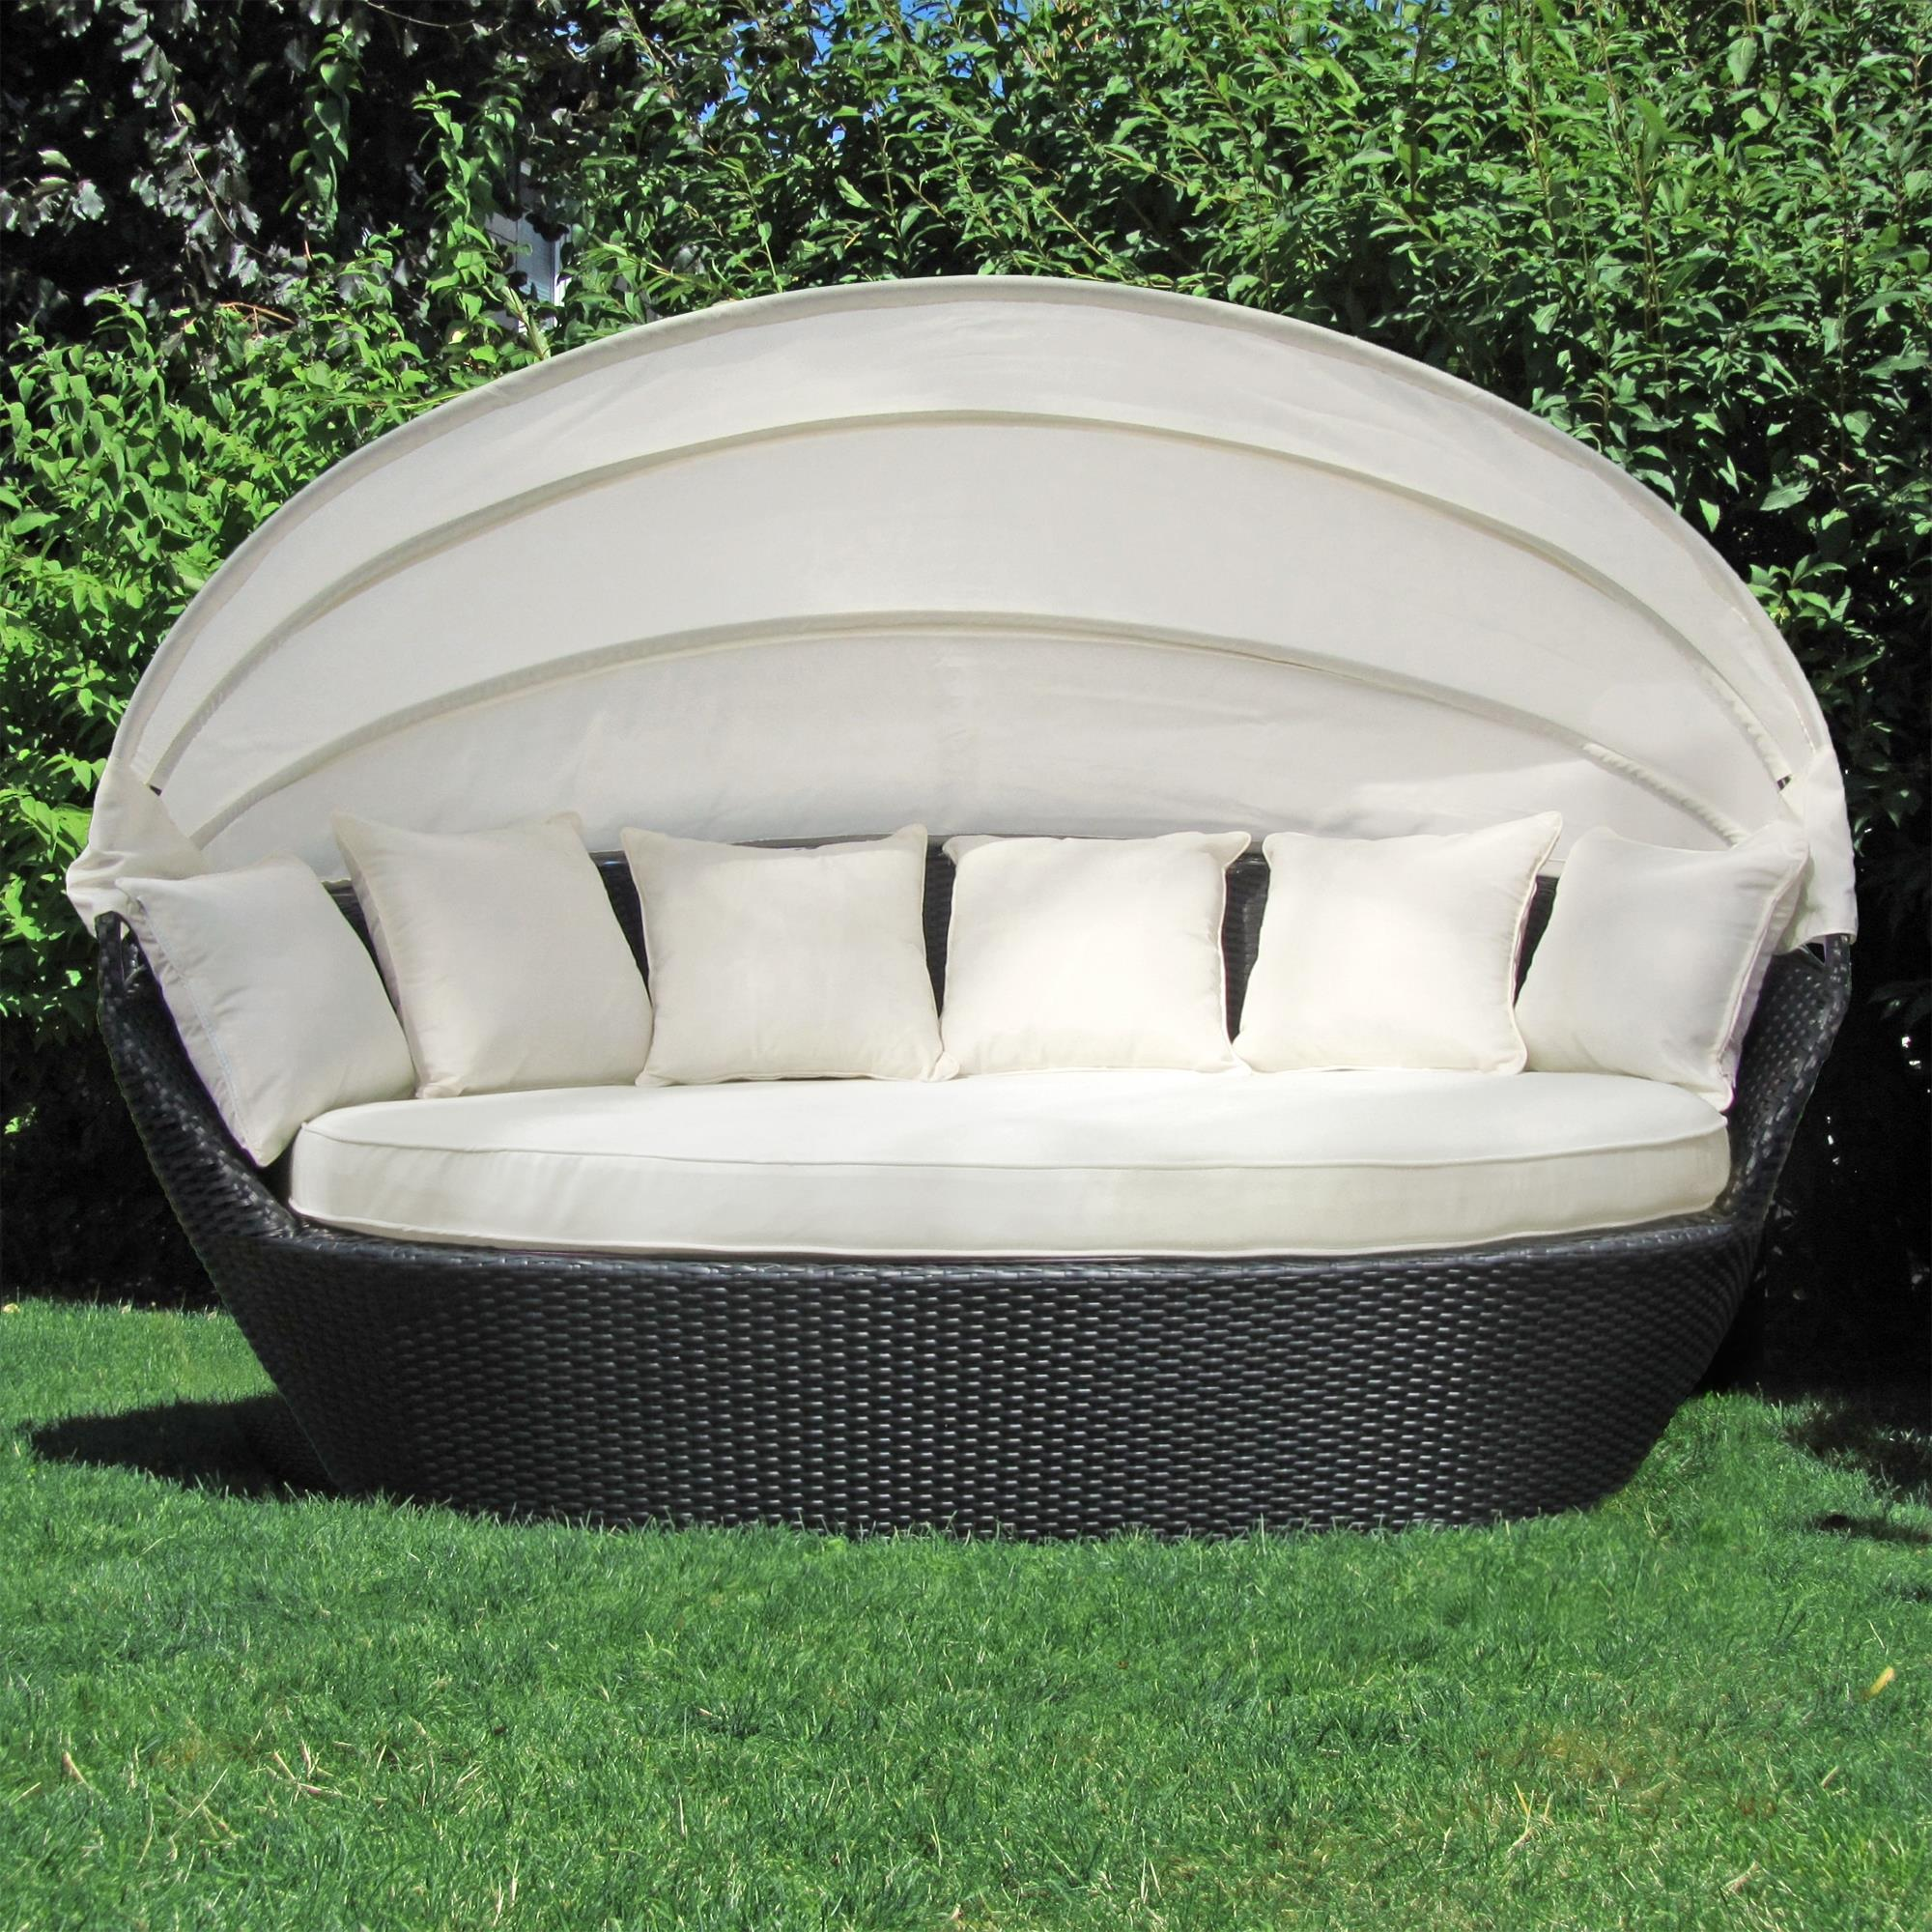 xxl sonneninsel sonnenliege strandkorb garten lounge muschel 200cm poly rattan ebay. Black Bedroom Furniture Sets. Home Design Ideas